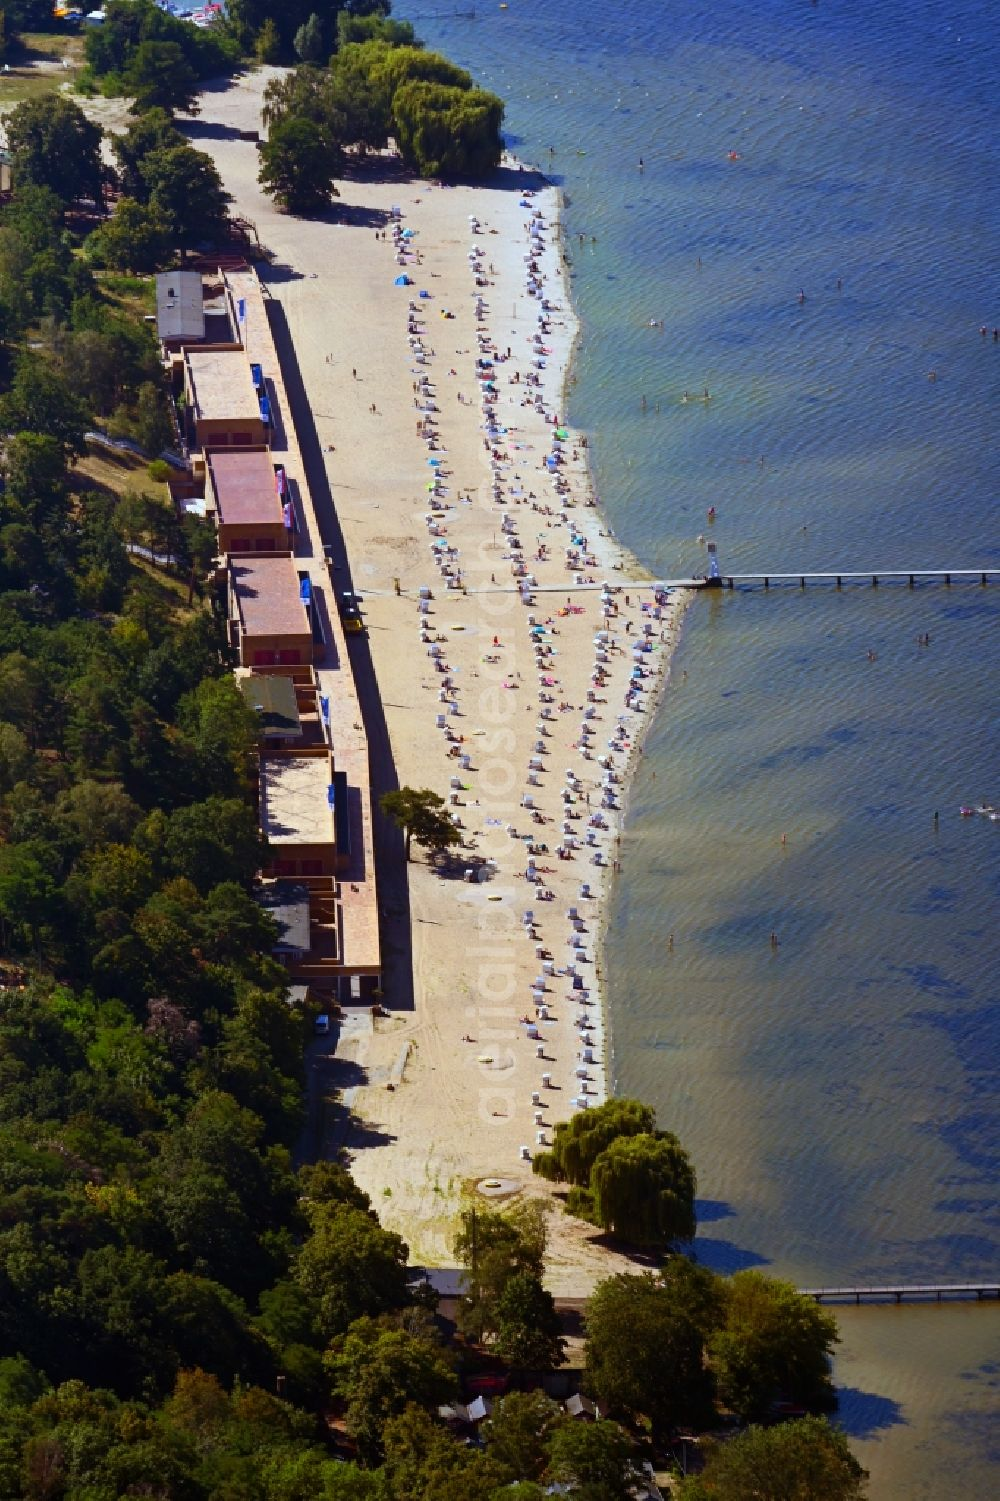 Berlin from above - Sandy beach areas on the lake Grosser Wannsee in the district Nikolassee in Berlin, Germany